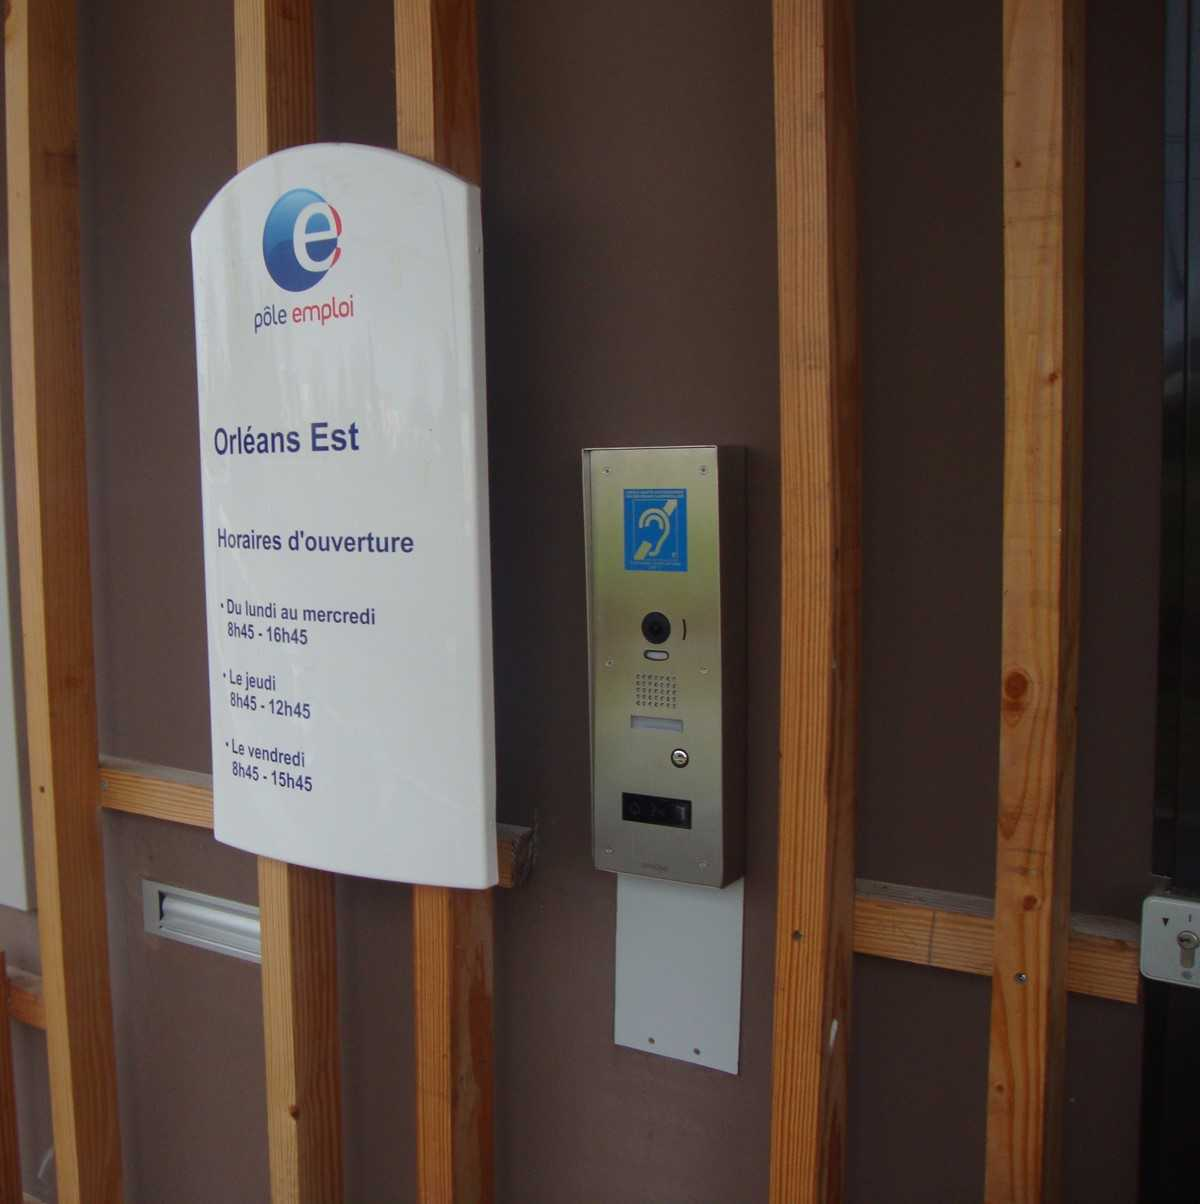 450 Pole emploi offices in France are now equipped with video intercom systems from Aiphone